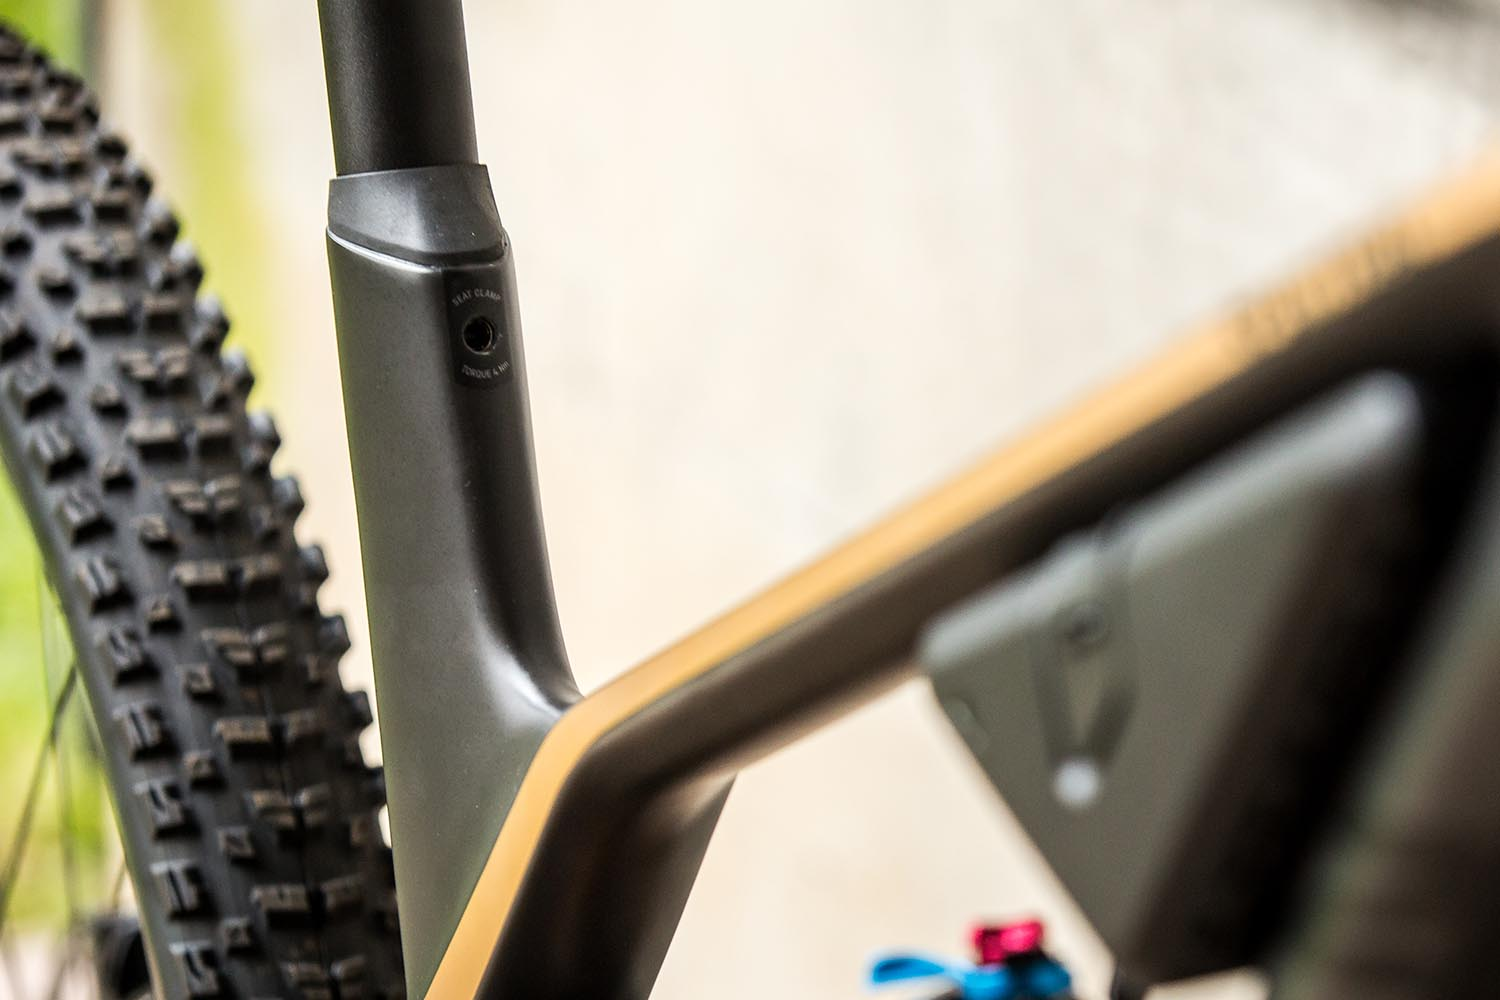 Integrated seat post clamp